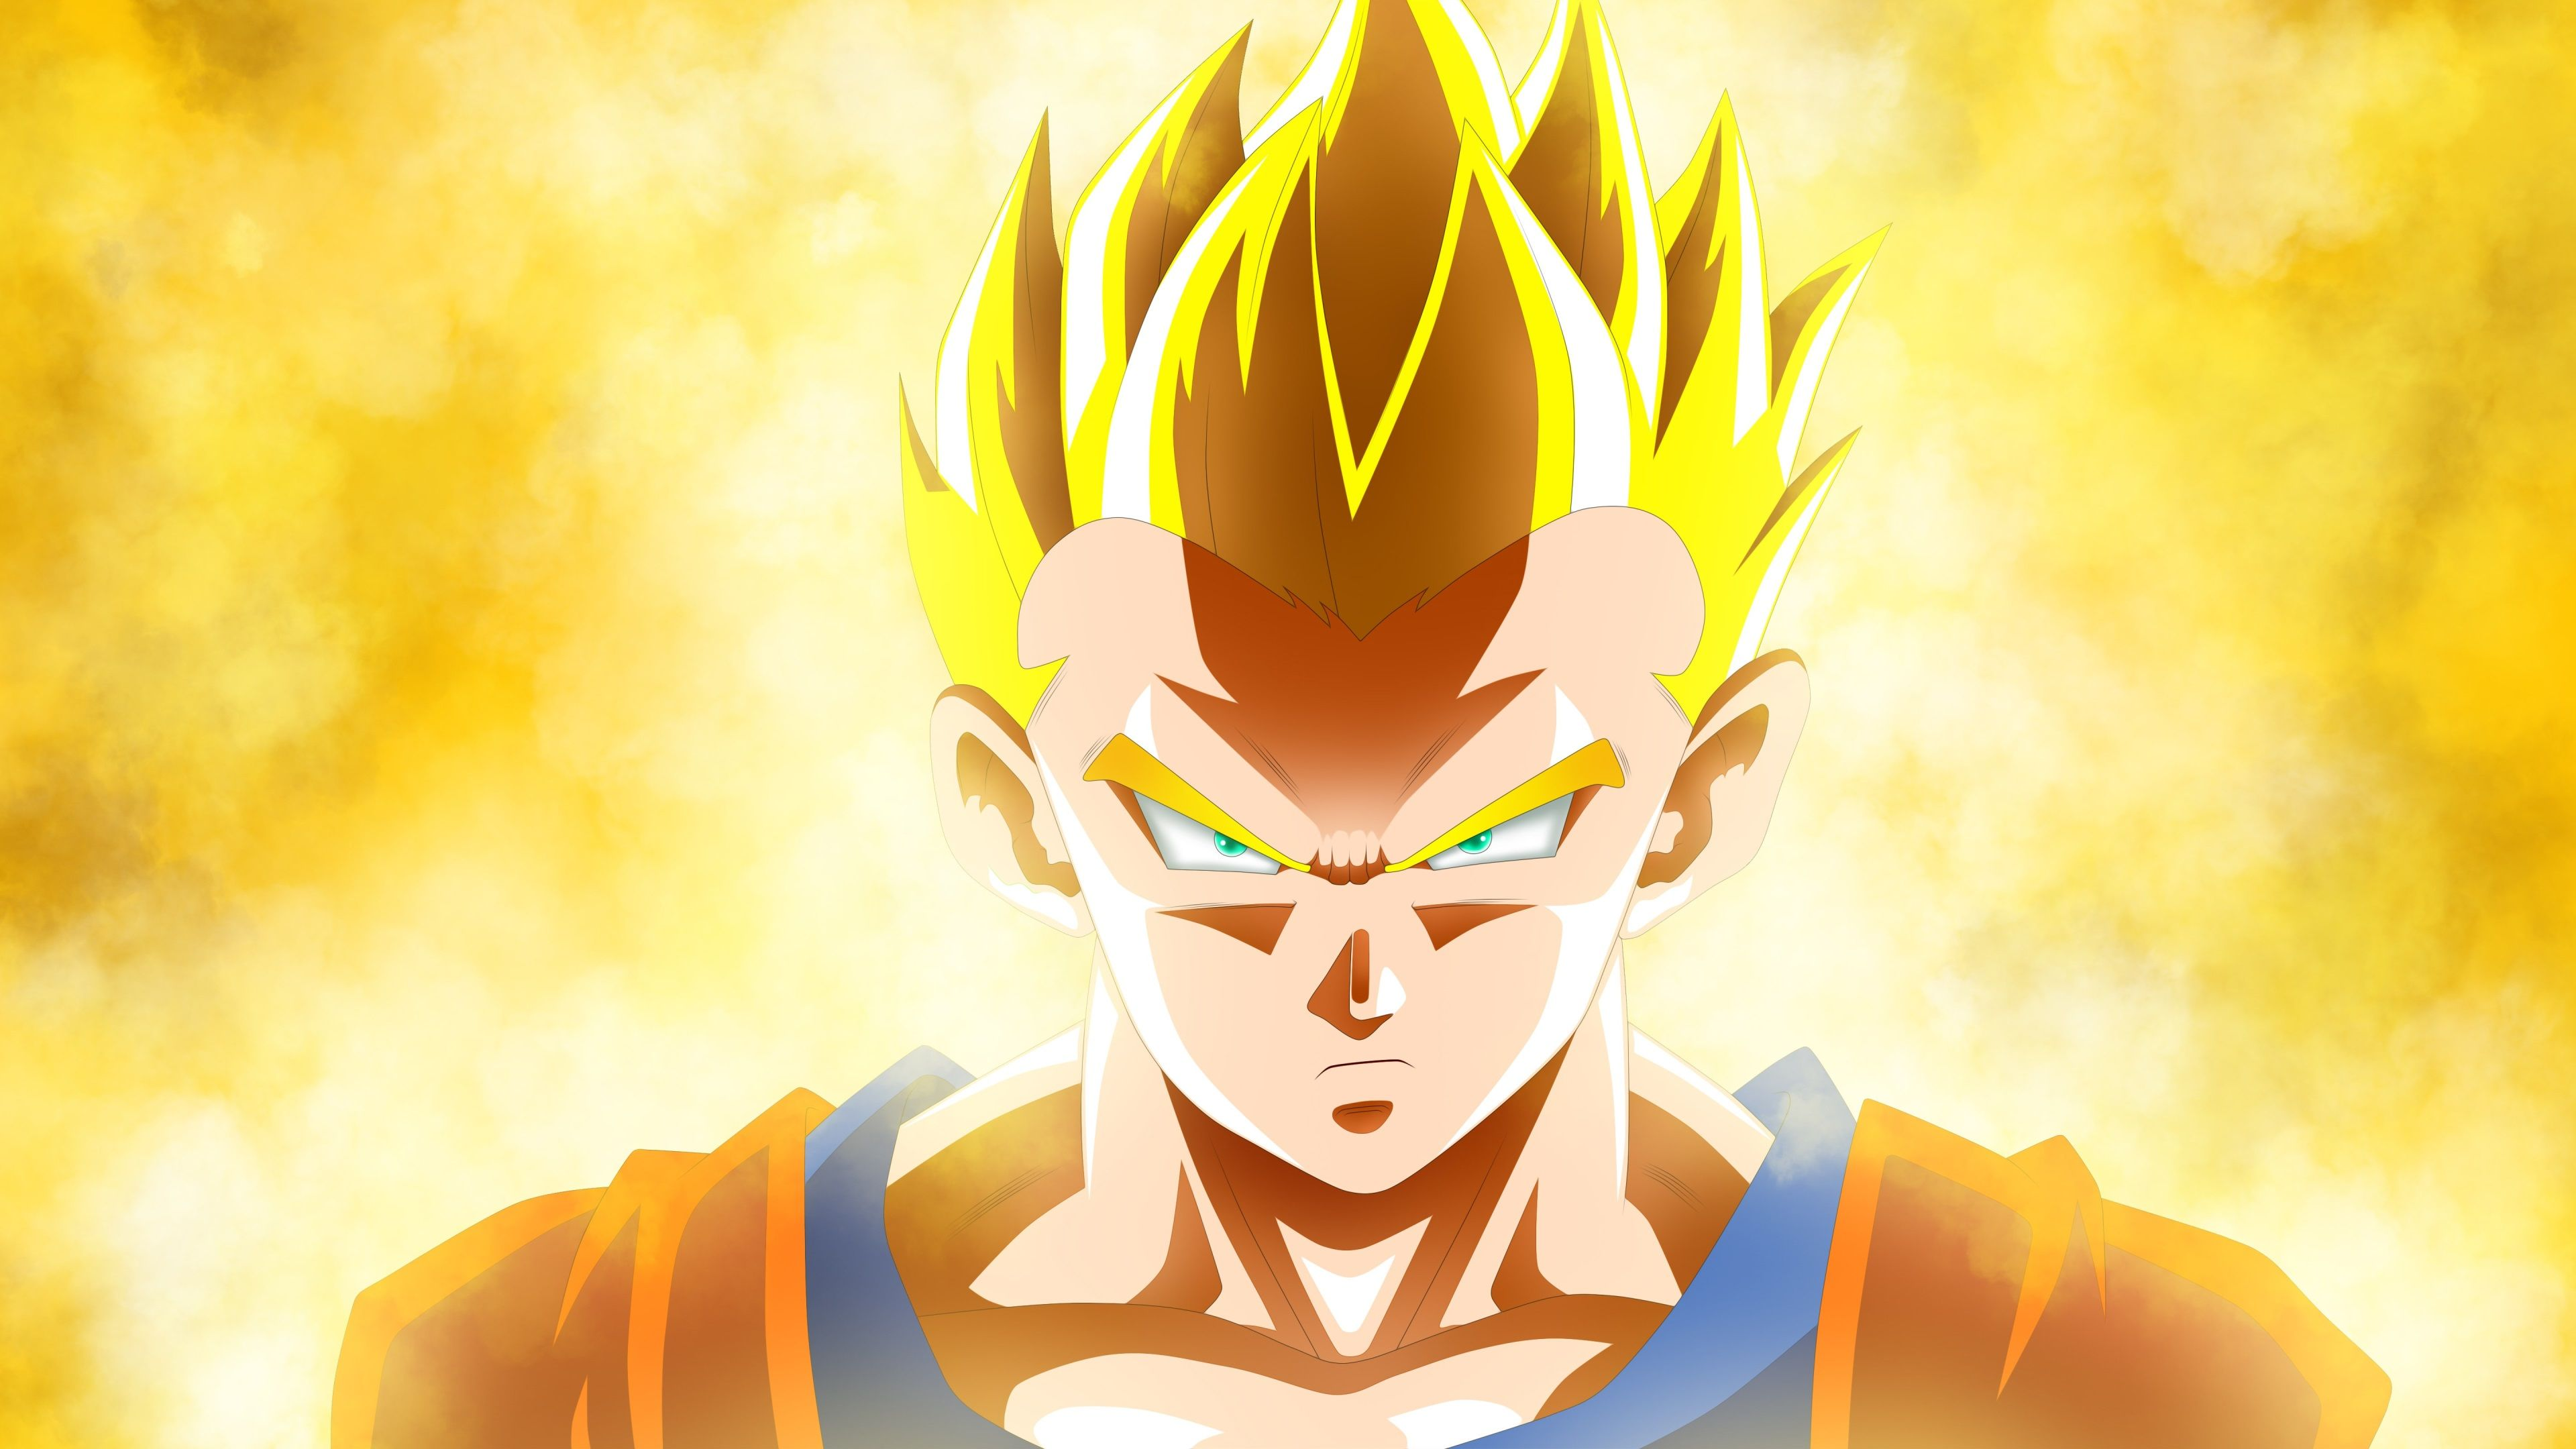 3840x2160 Son Goku 4k Pc Wallpaper Free Download Hd Dragon